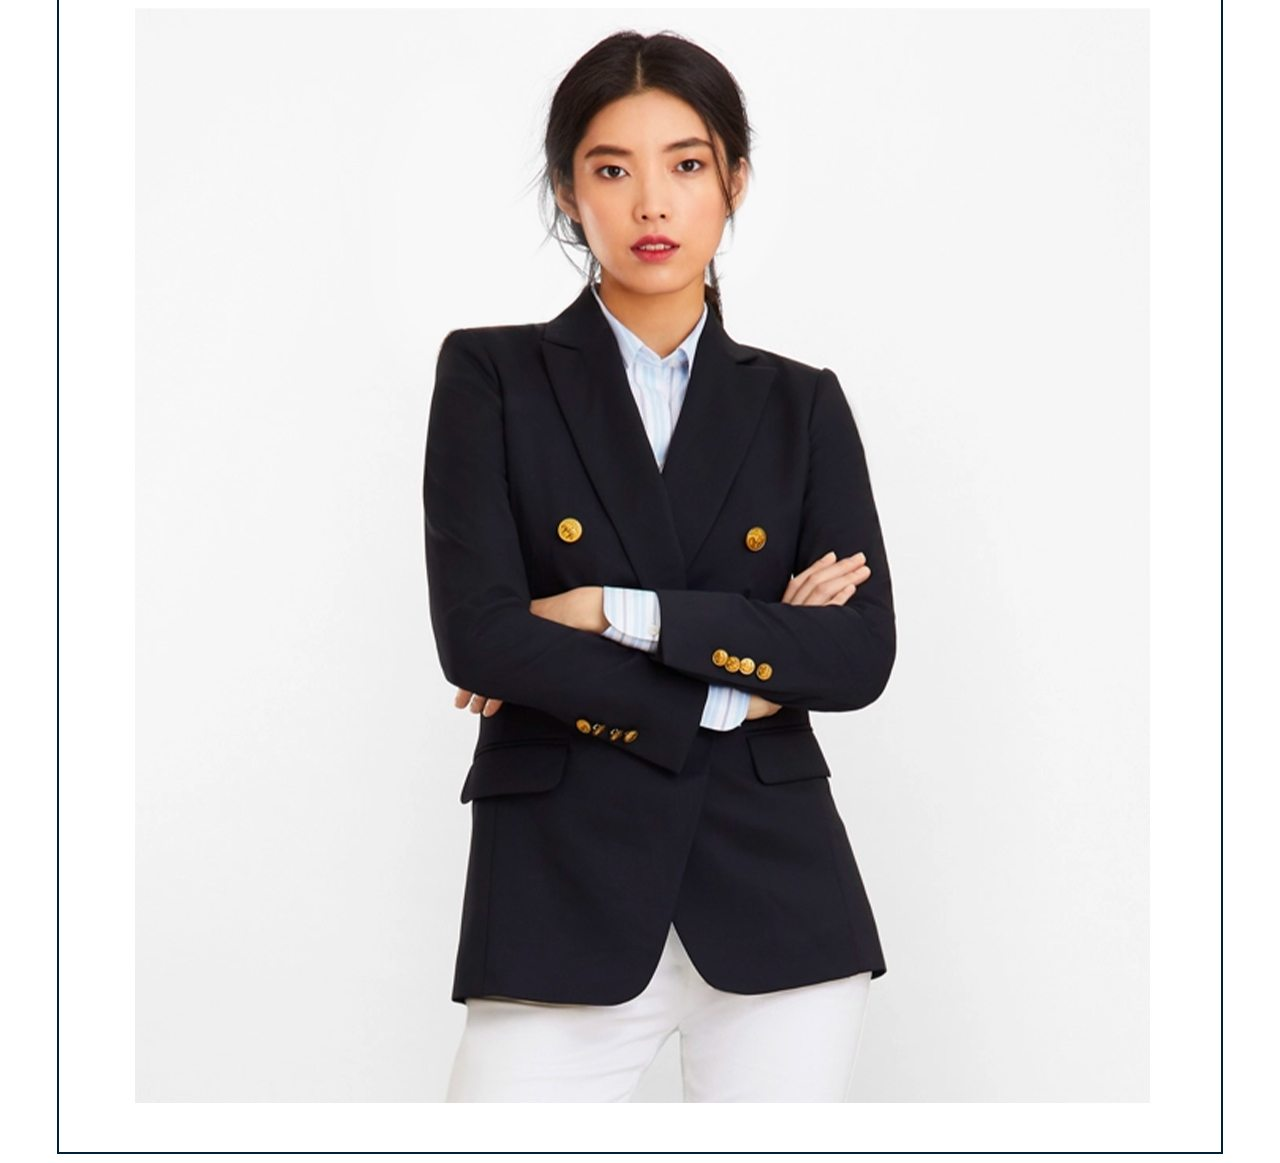 Blazer Focus A classic nautical-inspired navy blazer elevates any look. Extra 25% off for a limited time